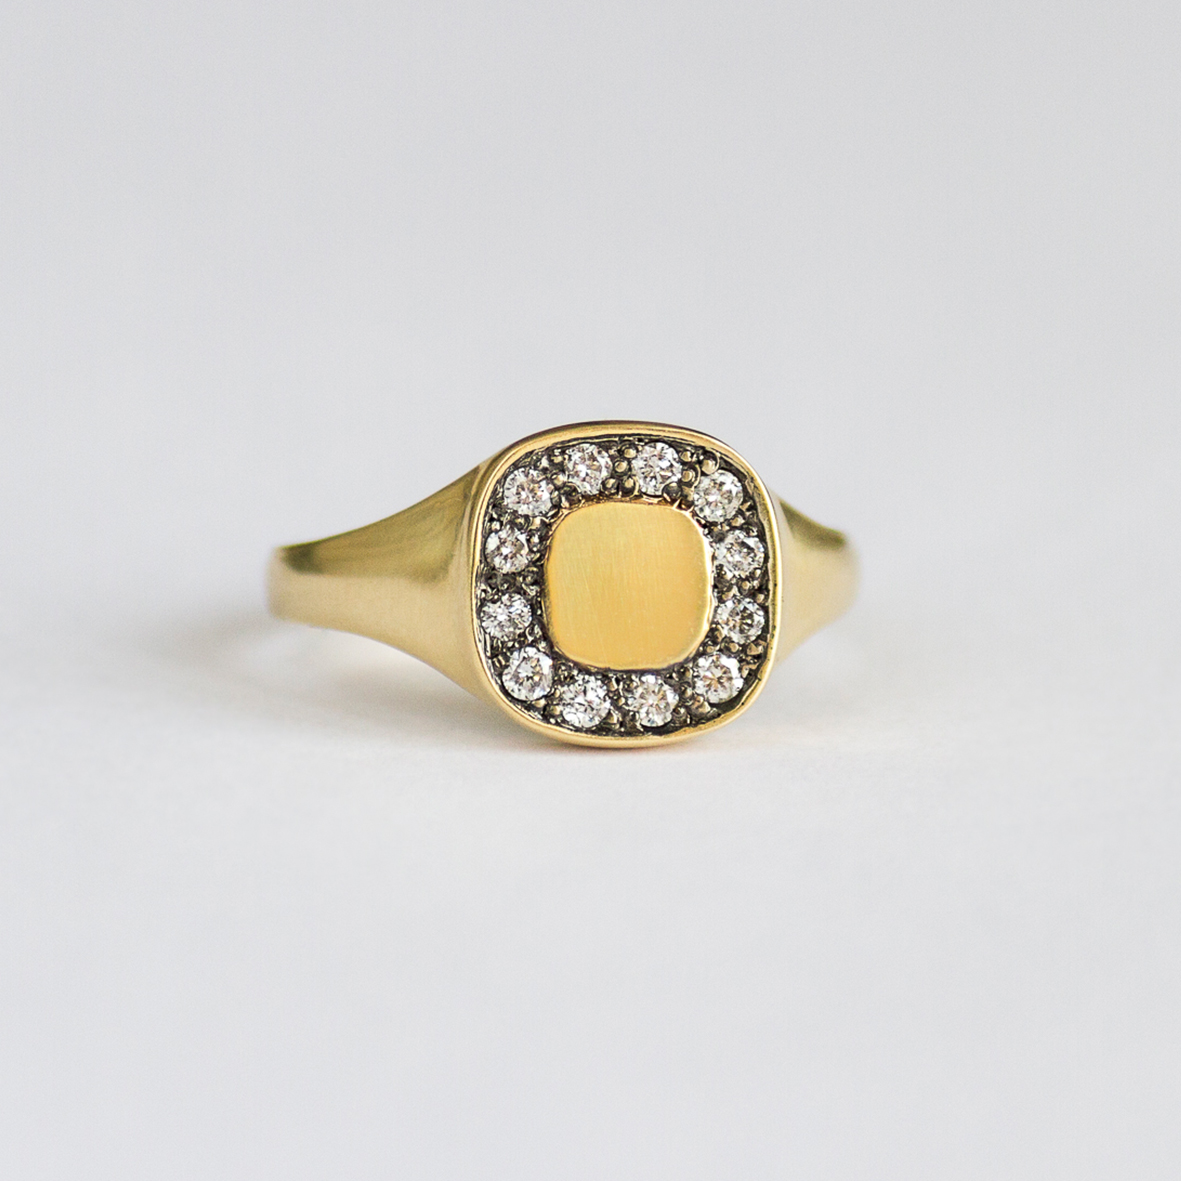 2. OONA_lotus_ficha1_signet square diamond ring